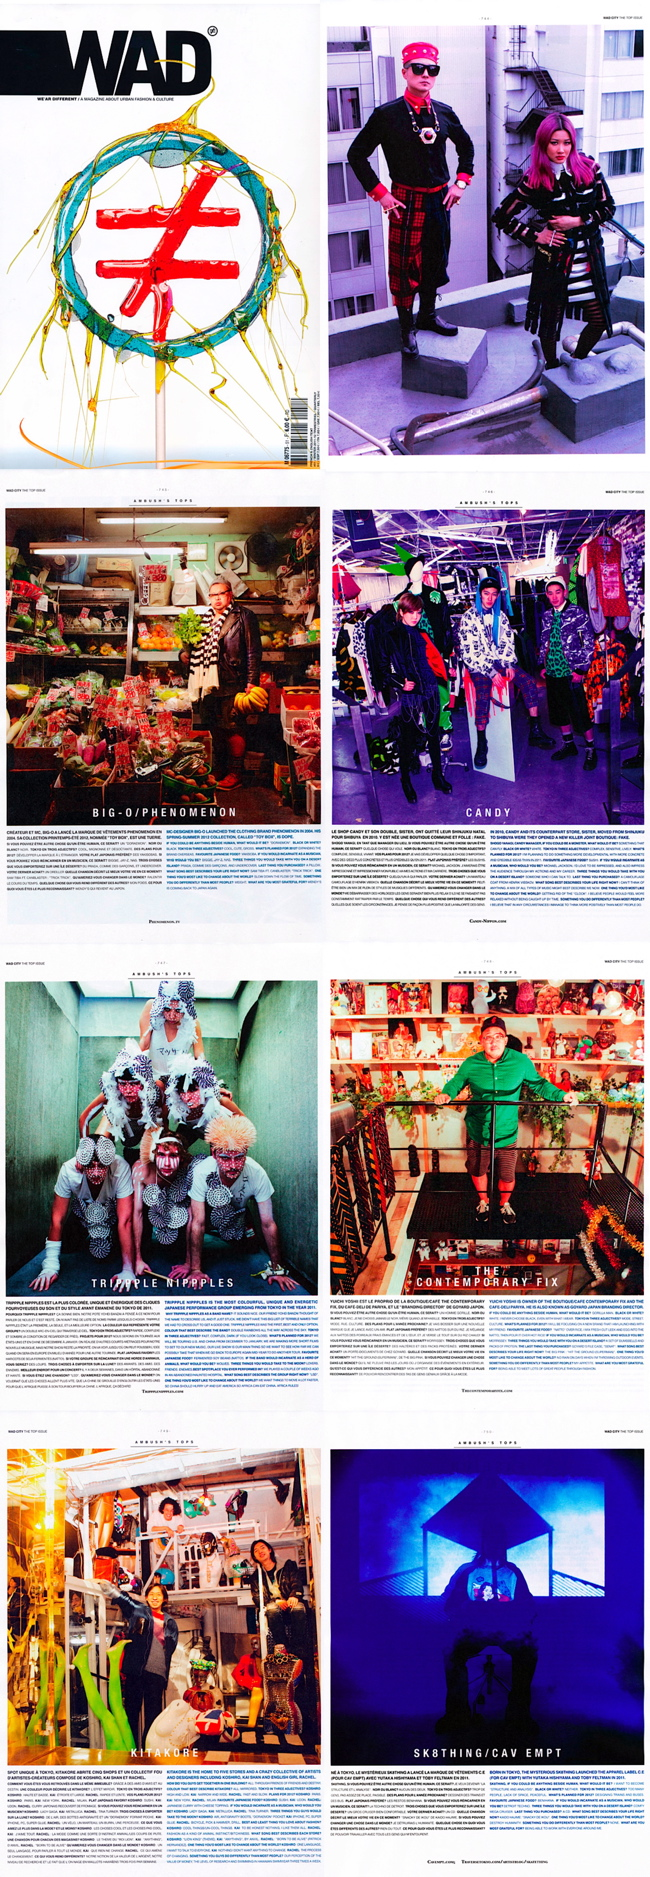 WAD (We Are Different) MAGAZINE #51